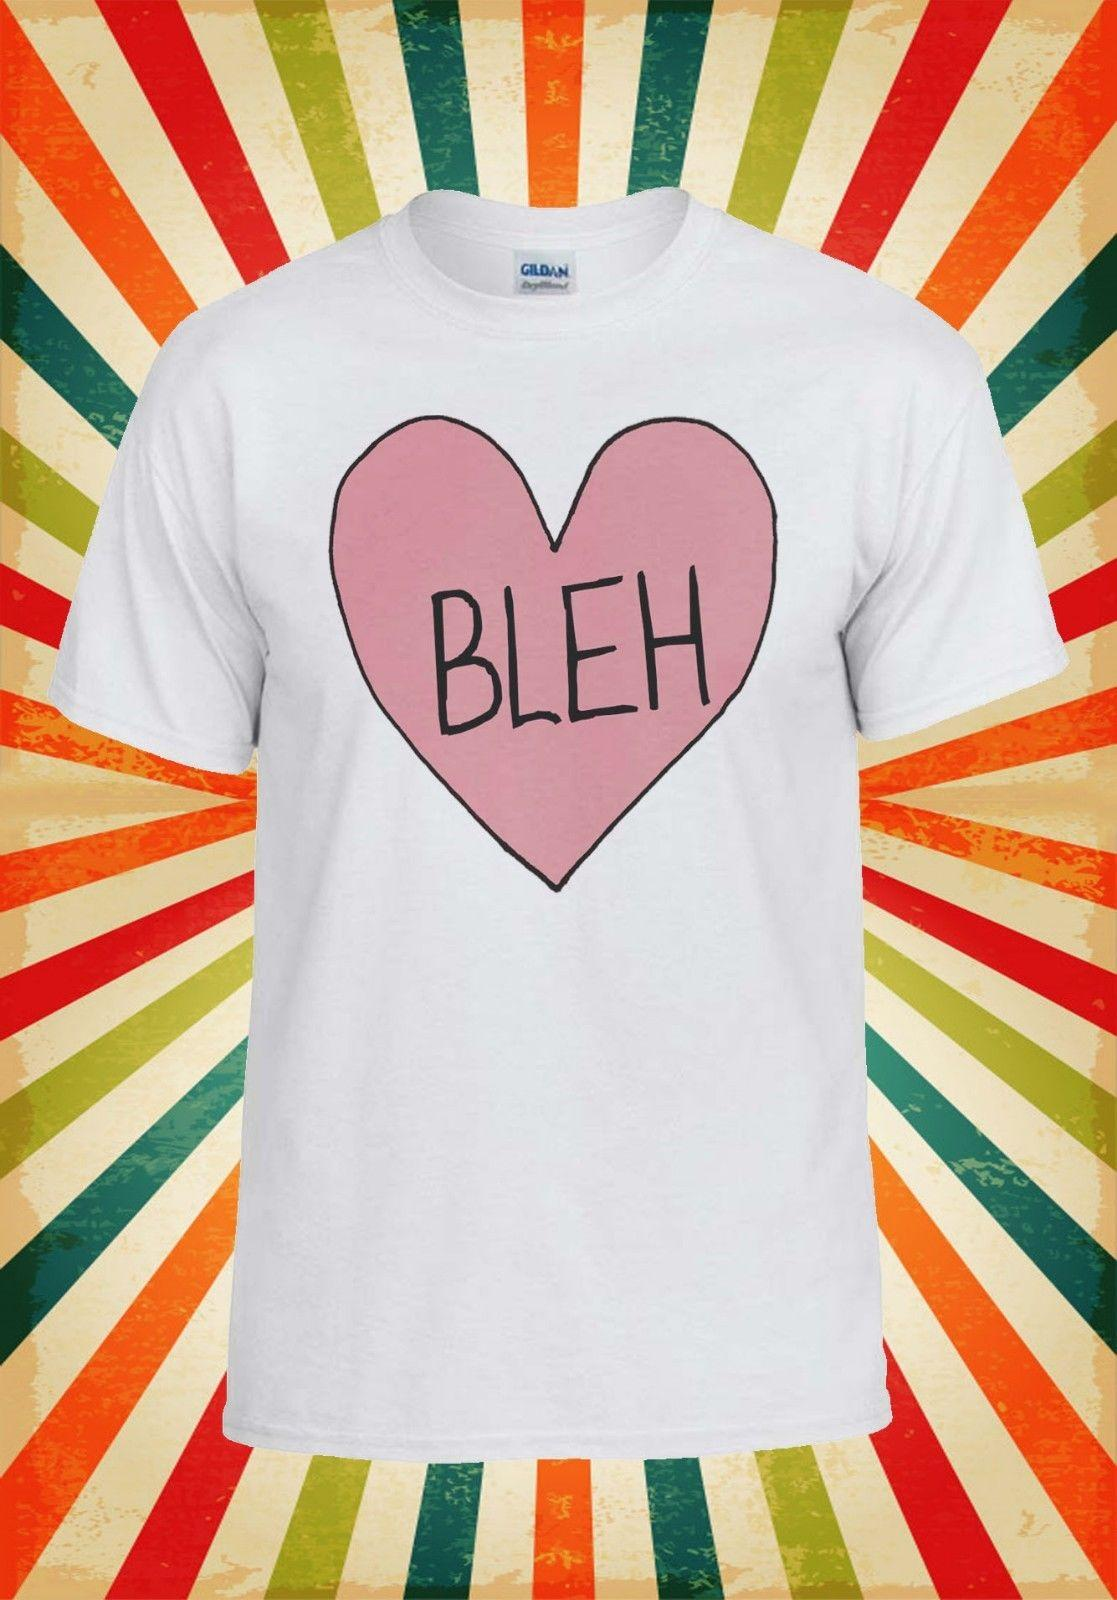 c79546d85 Bleh Broken Pink Heart Whatever Cool Men Women Vest Tank Top Unisex T Shirt  559 Funny Unisex Casual Top Best Deal On T Shirts That T Shirt From  Wrapfairy, ...